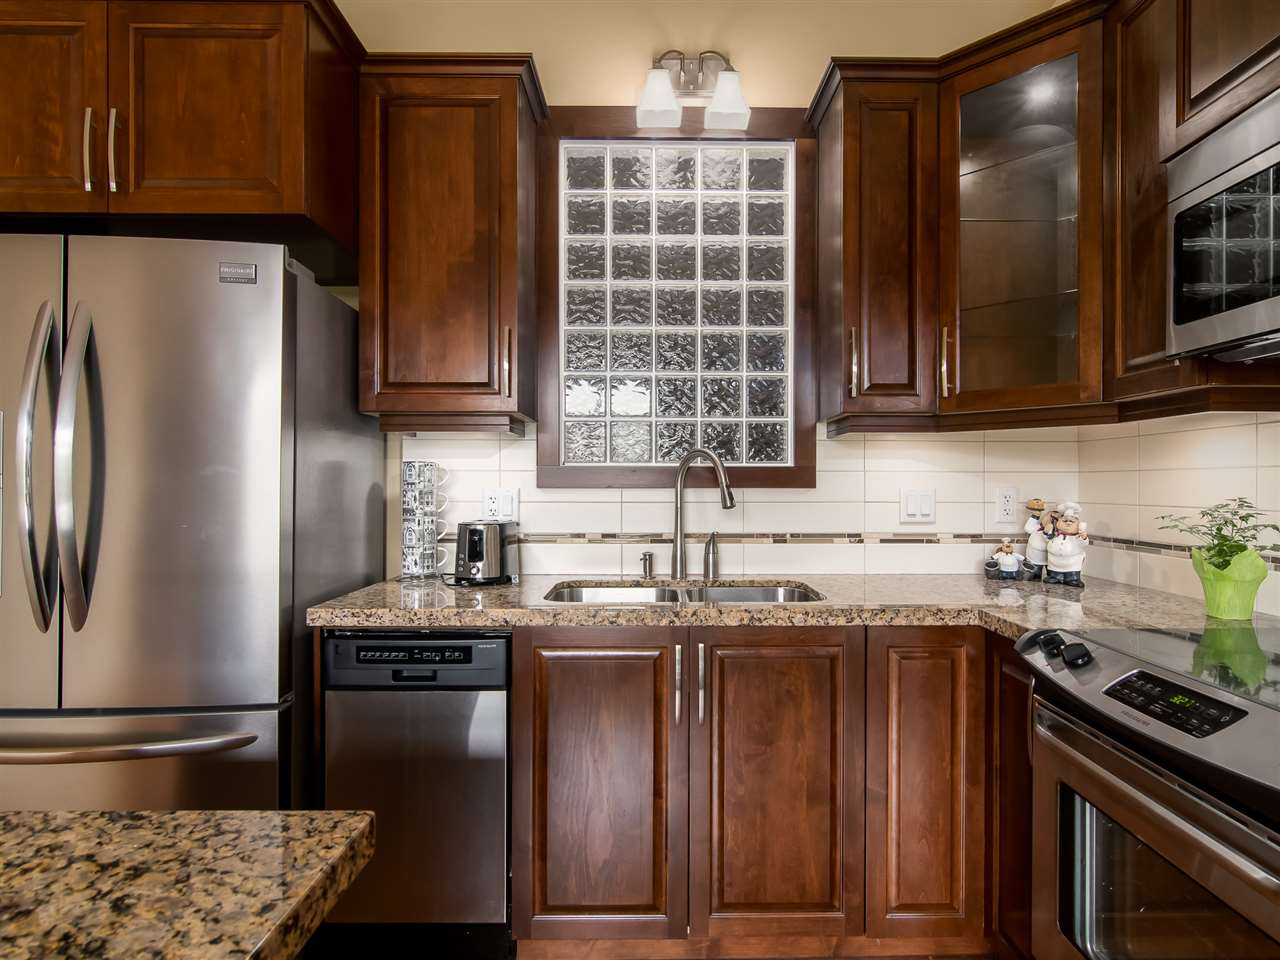 523 8288 207A STREET - Willoughby Heights Apartment/Condo for sale, 1 Bedroom (R2546058) - #1